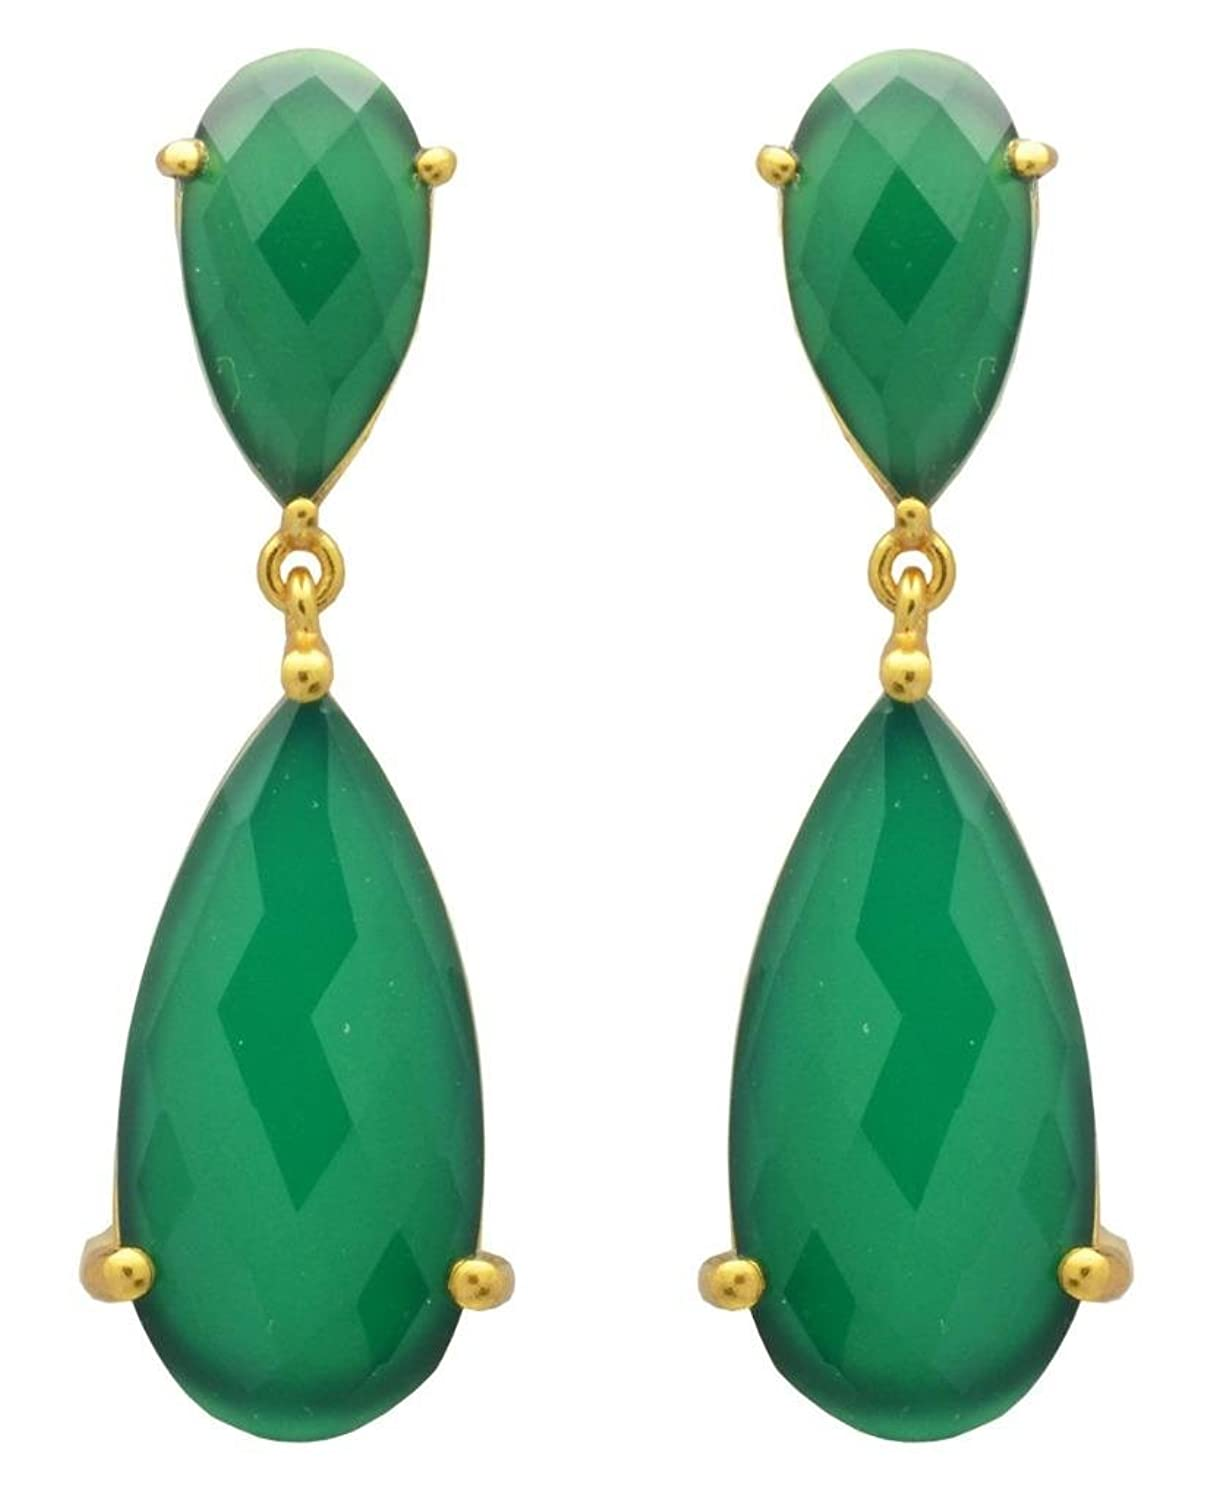 YoTreasure Green Onyx Gold Plated Over Brass Drop Statement Earrings Jewelry